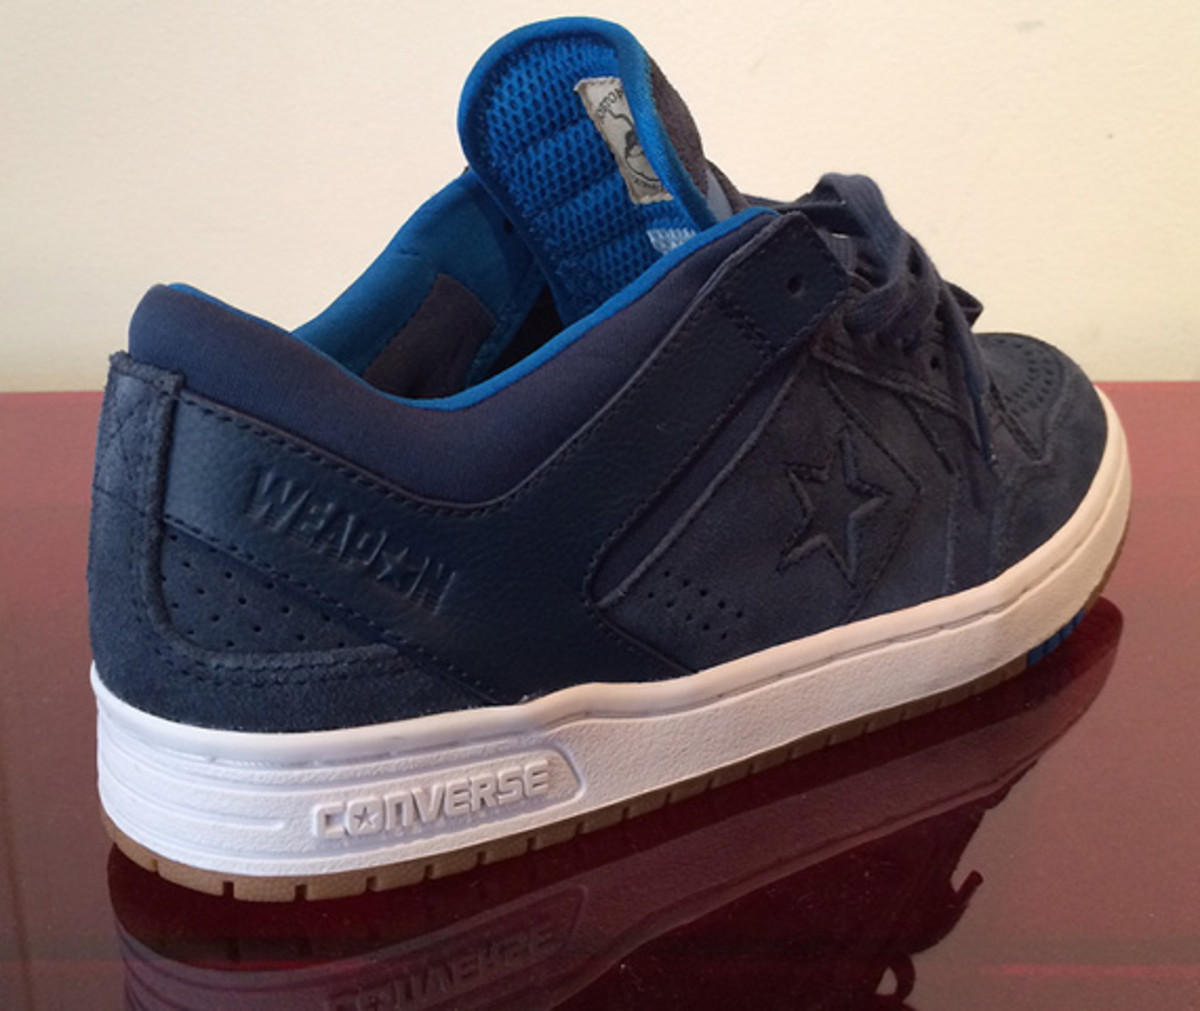 converse-cons-weapon-low-07